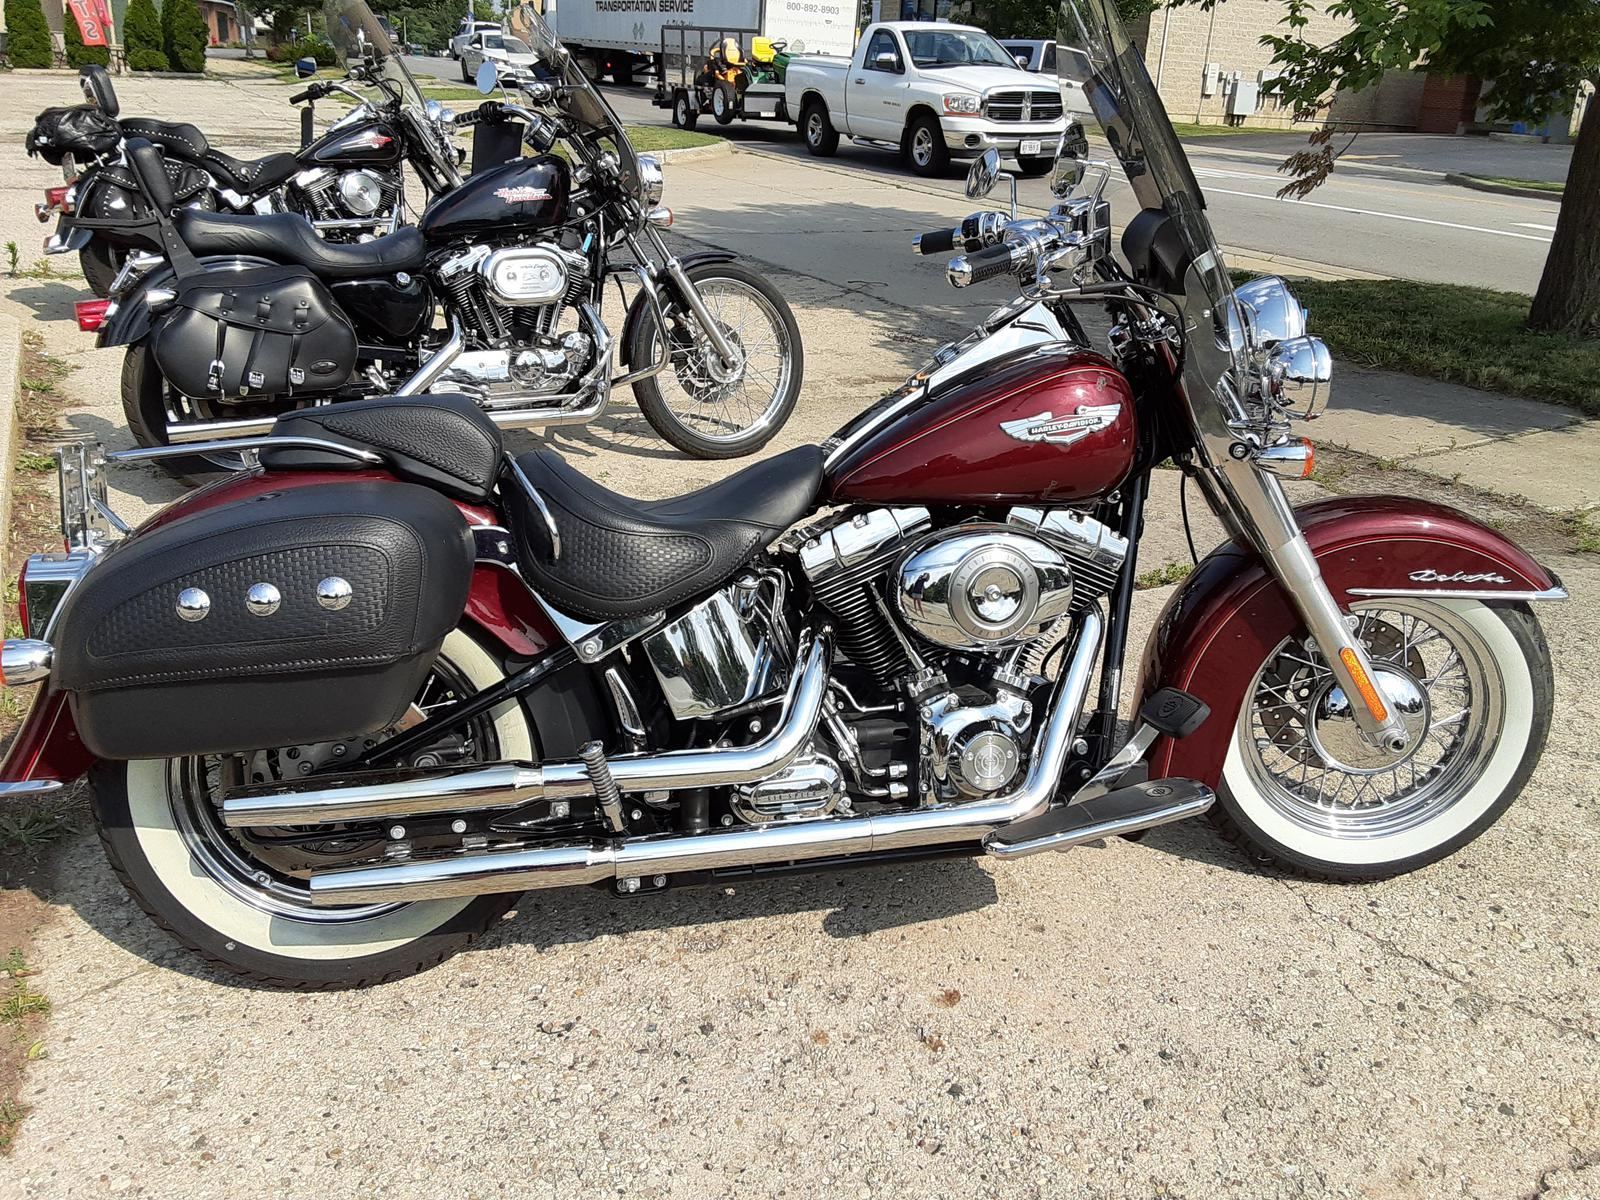 2008 Harley Davidson Softail Deluxe For Sale In Marengo Il War Performance Marengo Il 866 927 7373